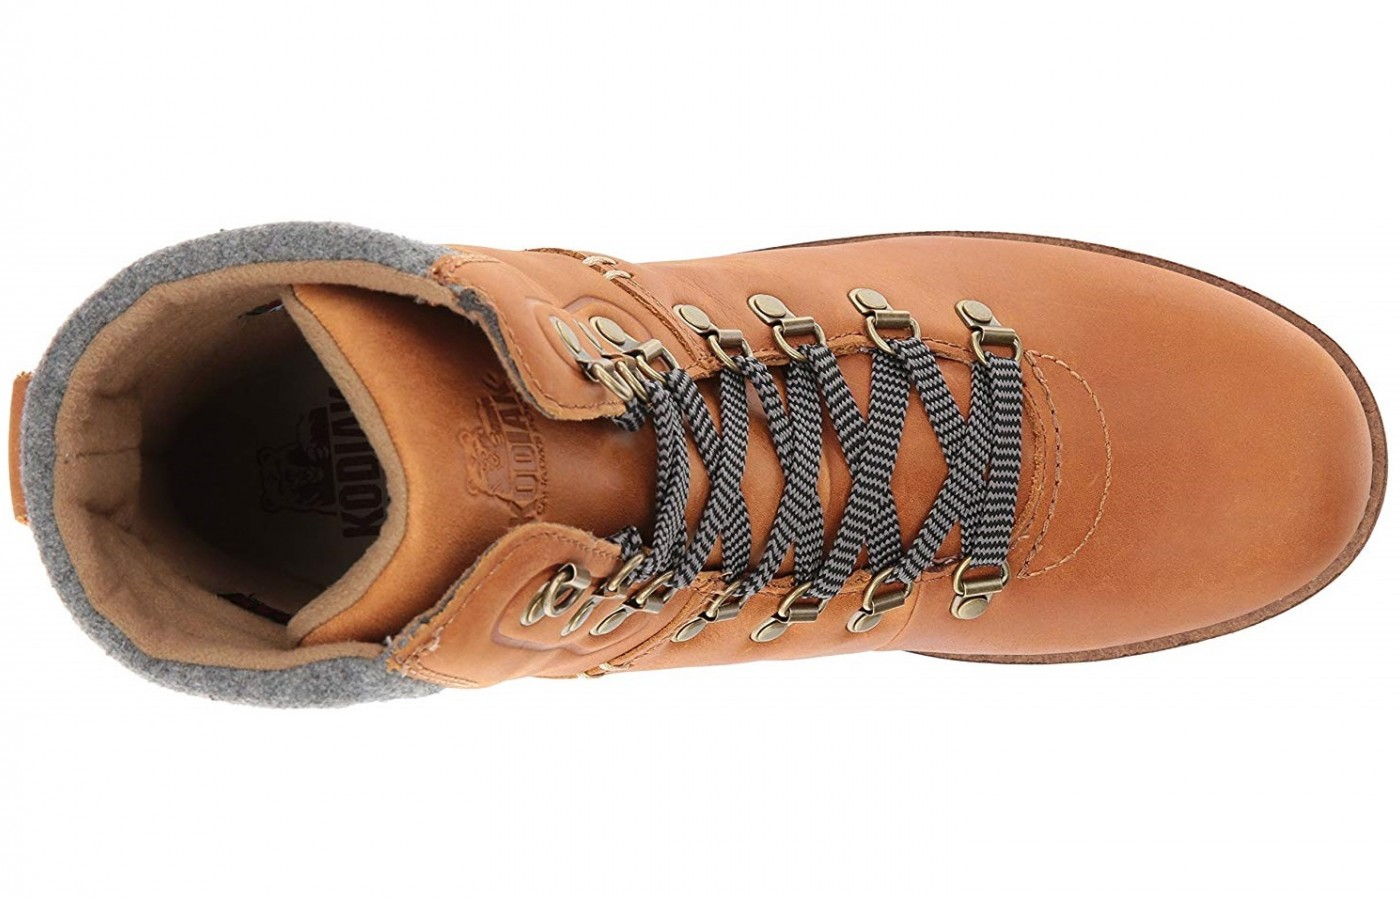 This boot offers a full lacing system which keeps the boot closer to the foot for a more natural step.